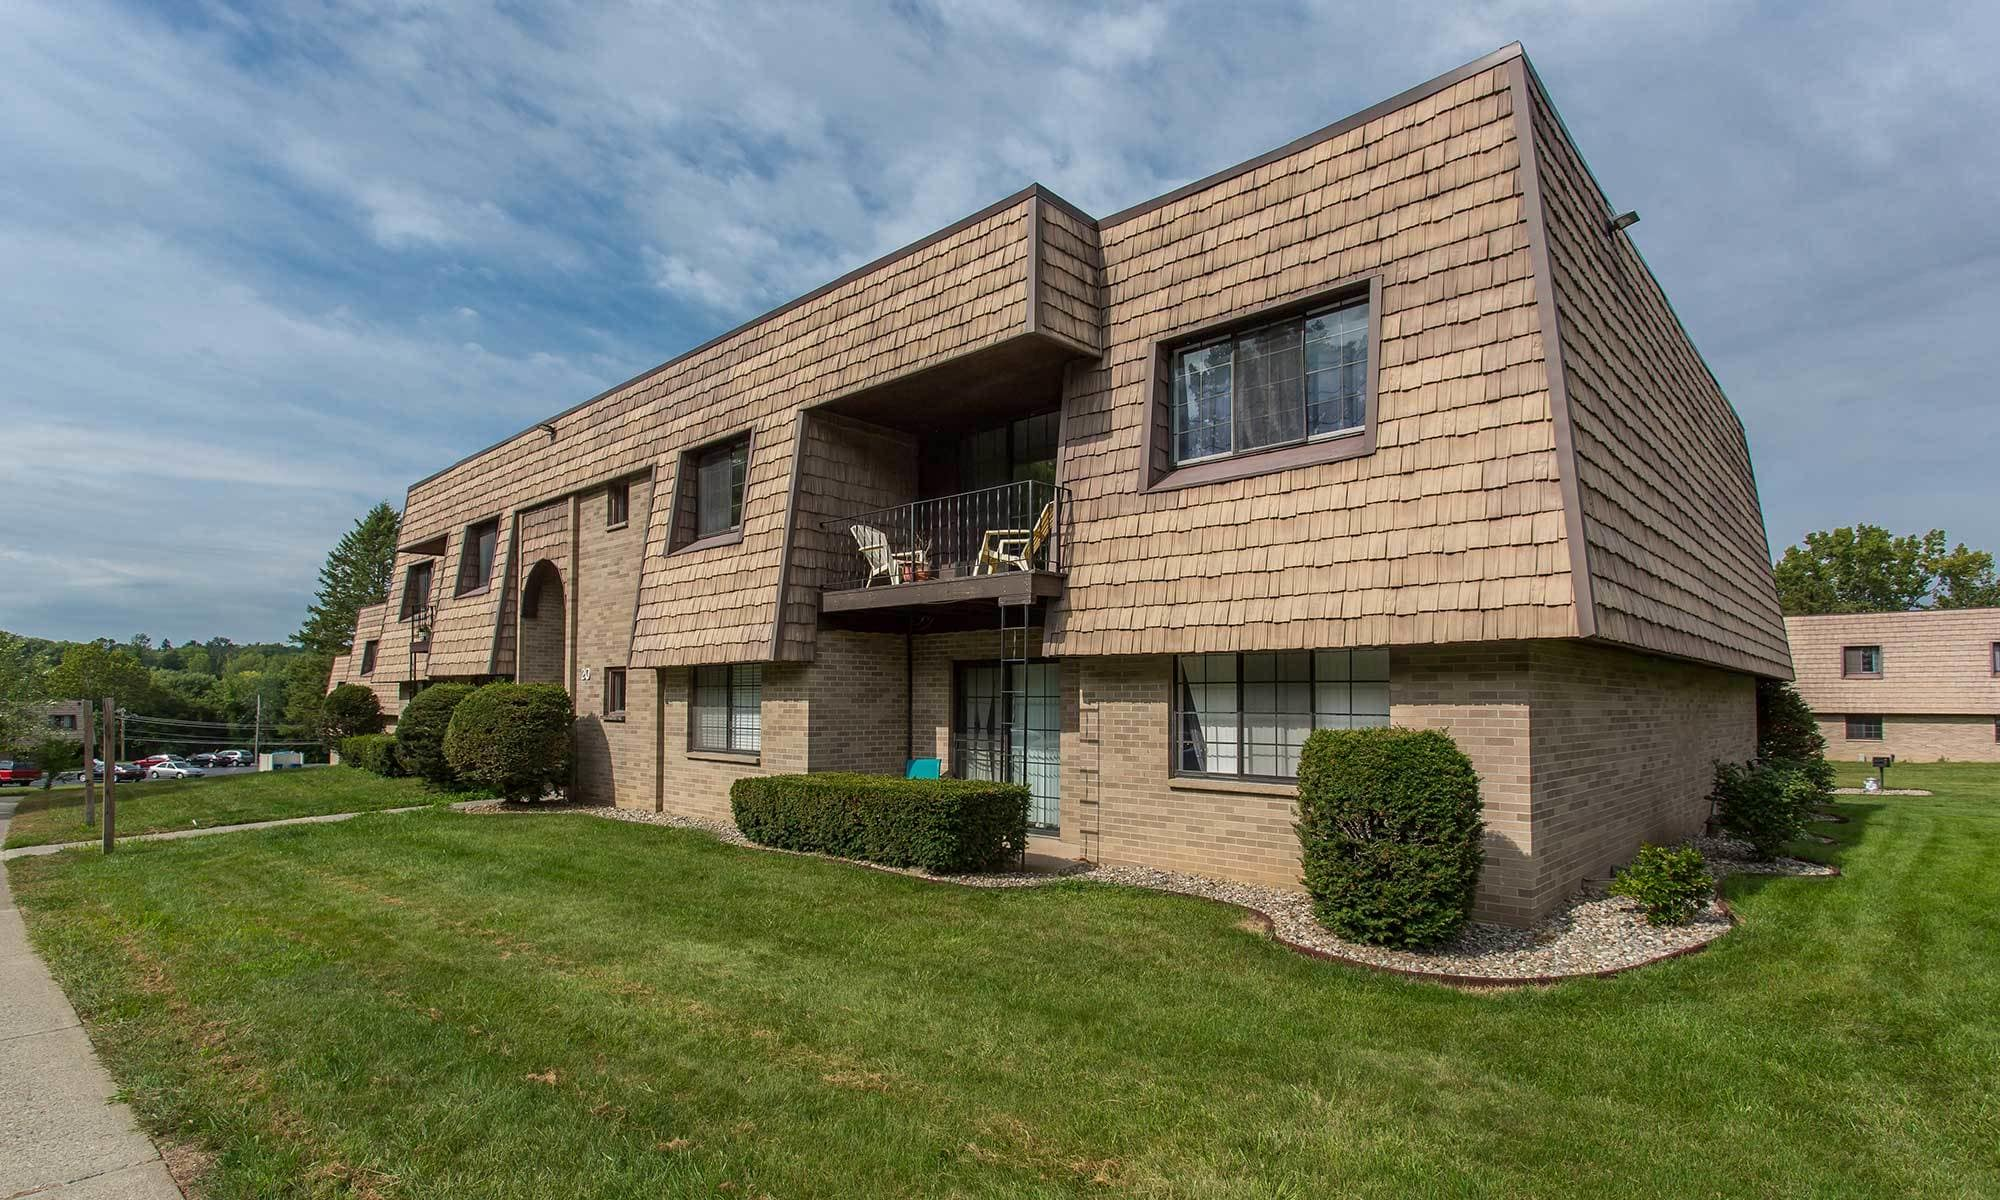 Welcome to Meadowbrook Apartments in Slingerlands, NY